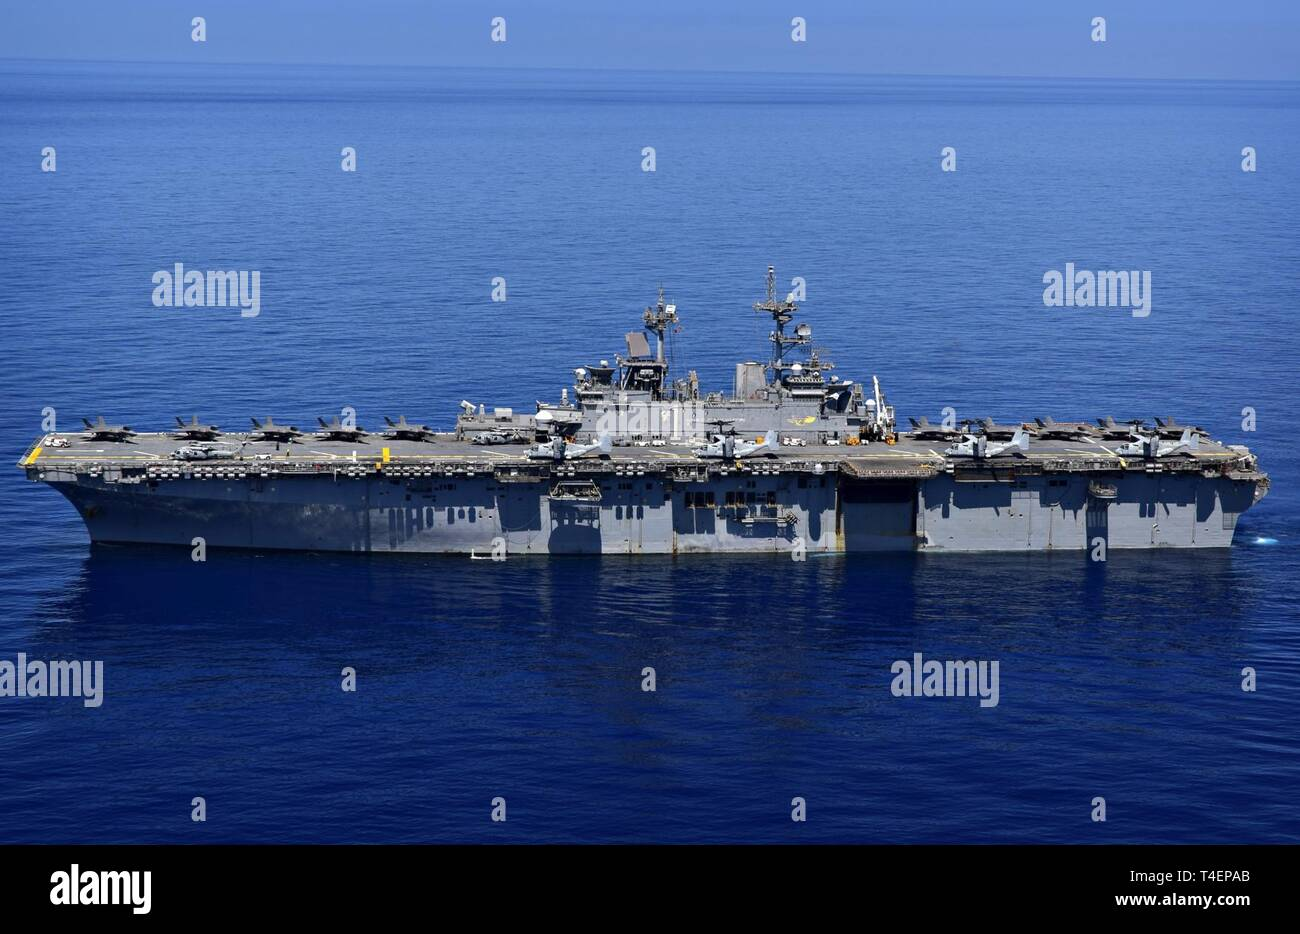 SOUTH CHINA SEA (March 29, 2019) The amphibious assault ship USS Wasp (LHD 1) transits the waters of the South China Sea. Wasp, flagship of Wasp Amphibious Ready Group, is operating in the Indo-Pacific region to enhance interoperability with partners and serve as a lethal, ready-response force for any type of contingency. - Stock Image